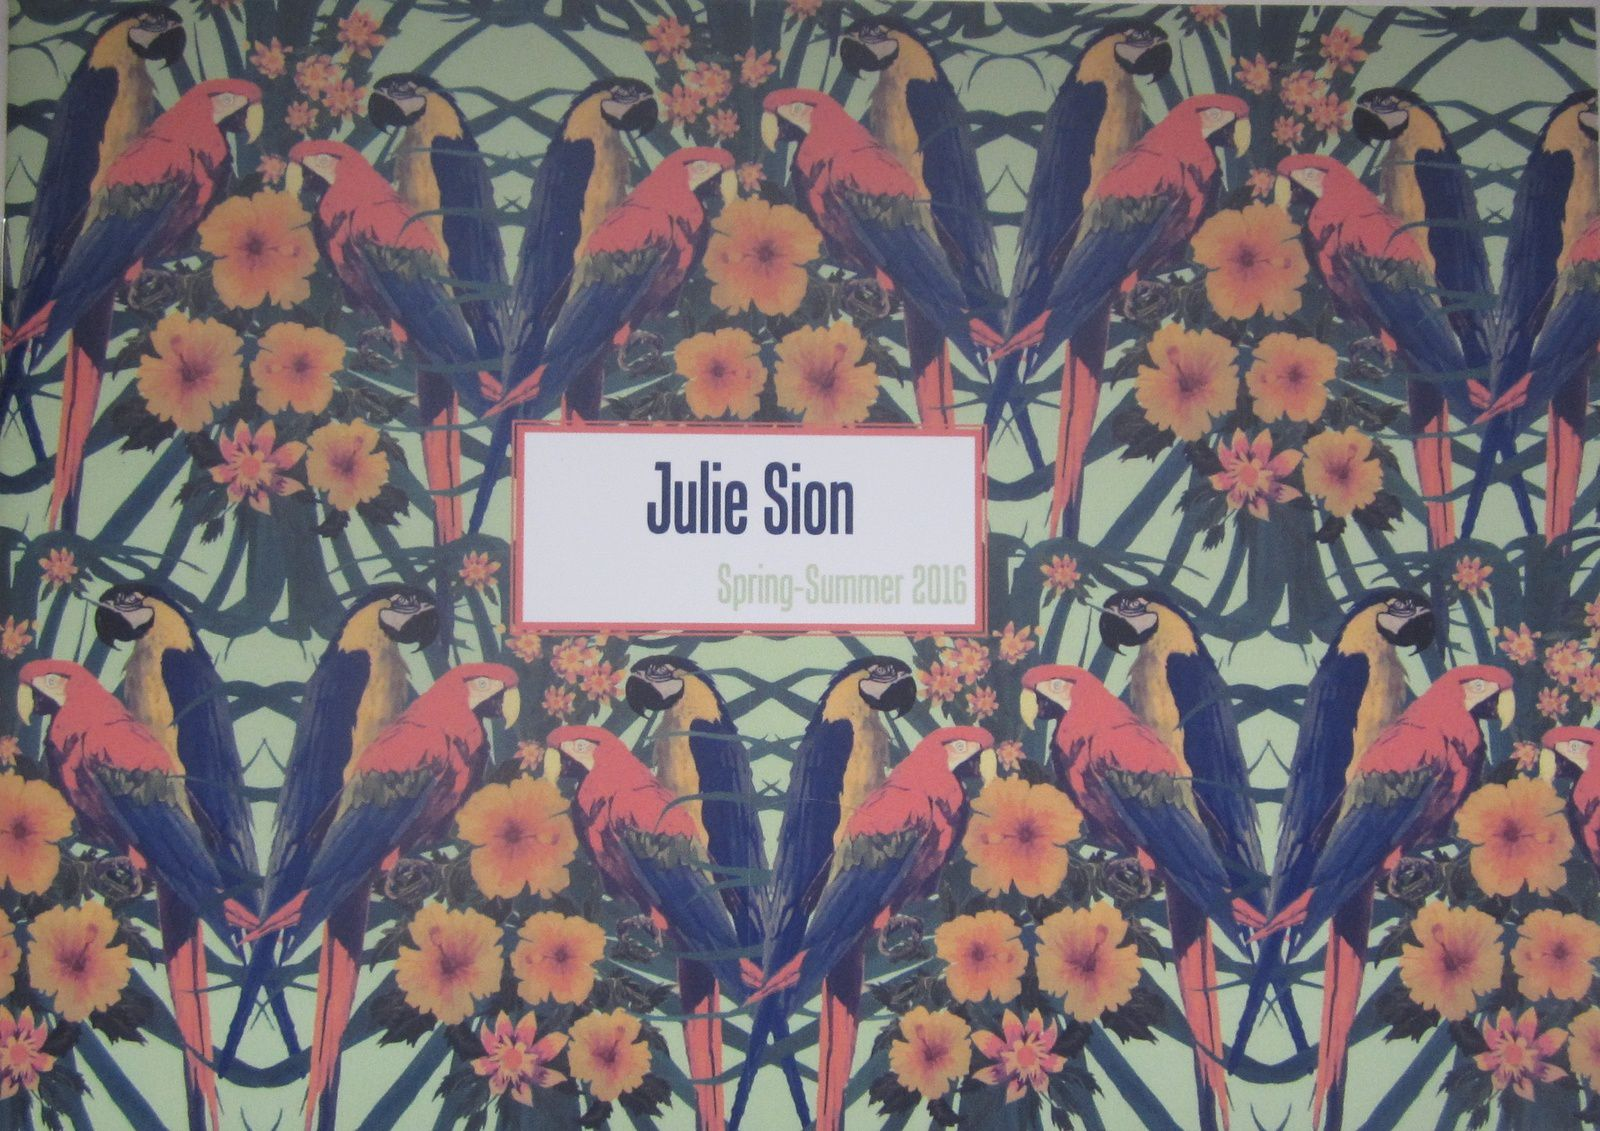 COLLECTION PRINTEMPS-ÉTÉ 2016 de JULIE SION